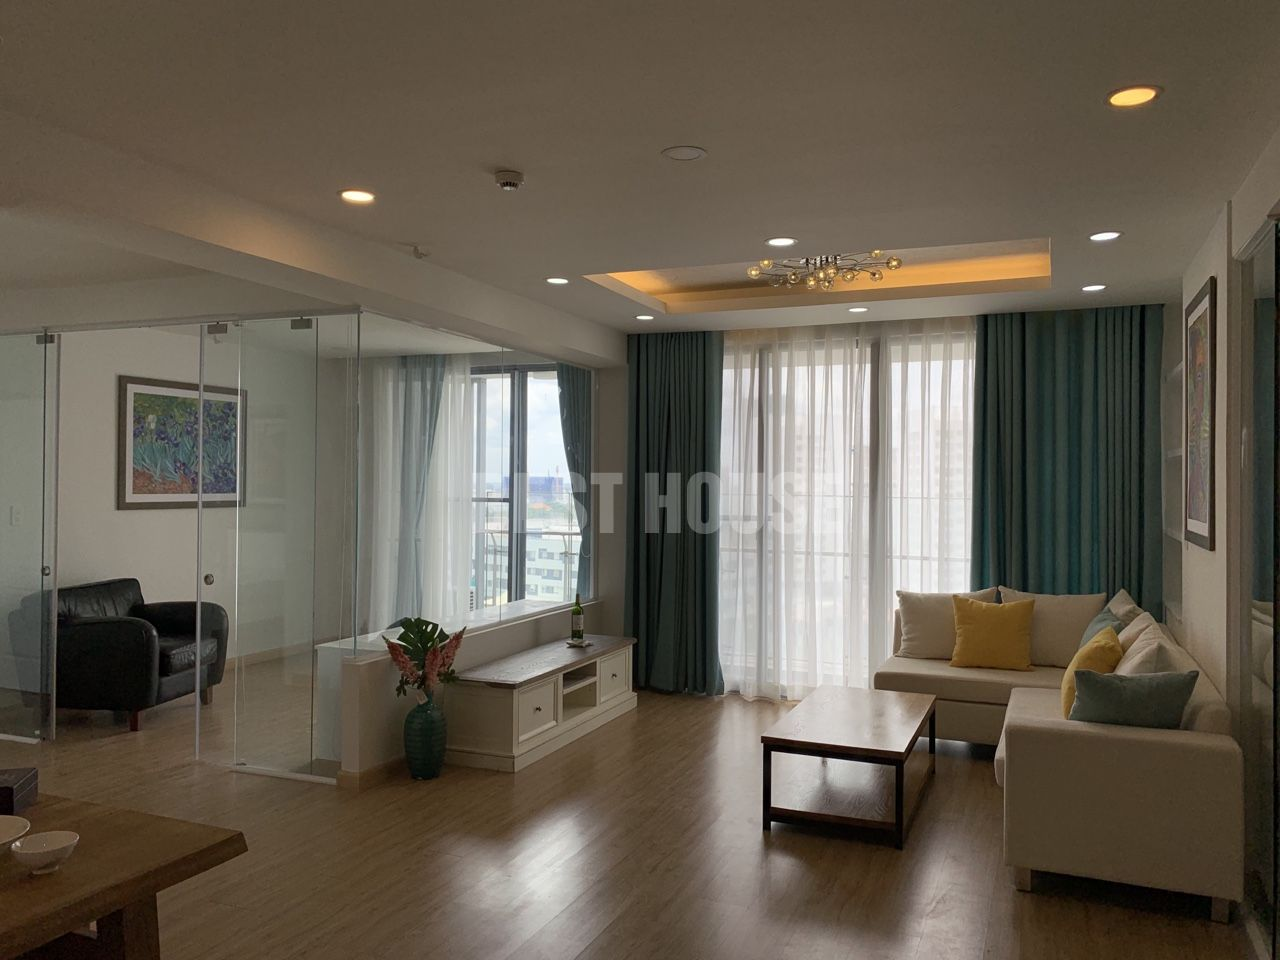 green-valley-apartment-for-rent-in-phu-my-hung-district-7-hcmc-9